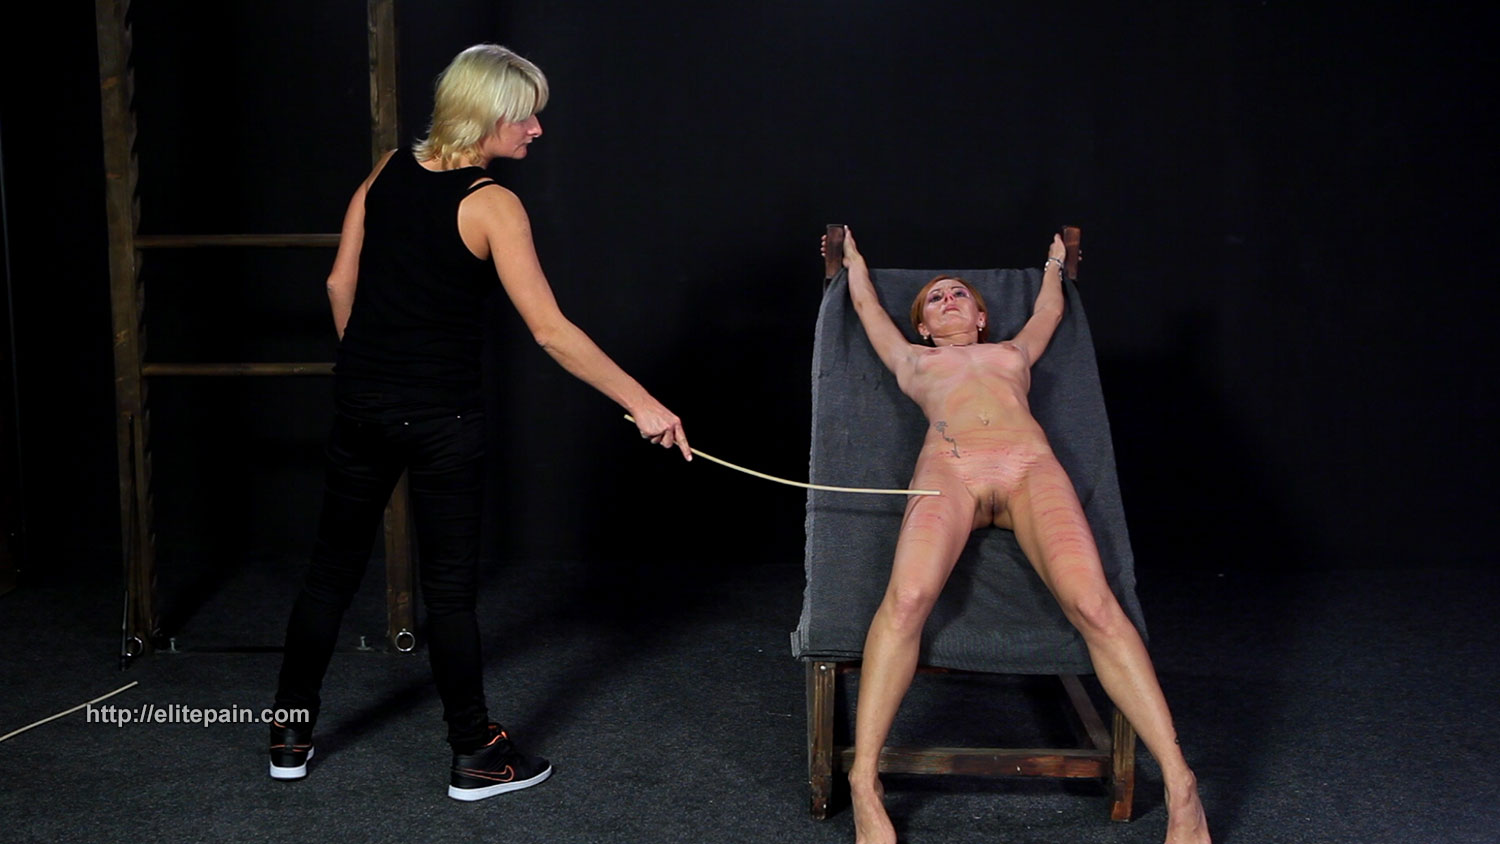 All bdsm punishment video was born